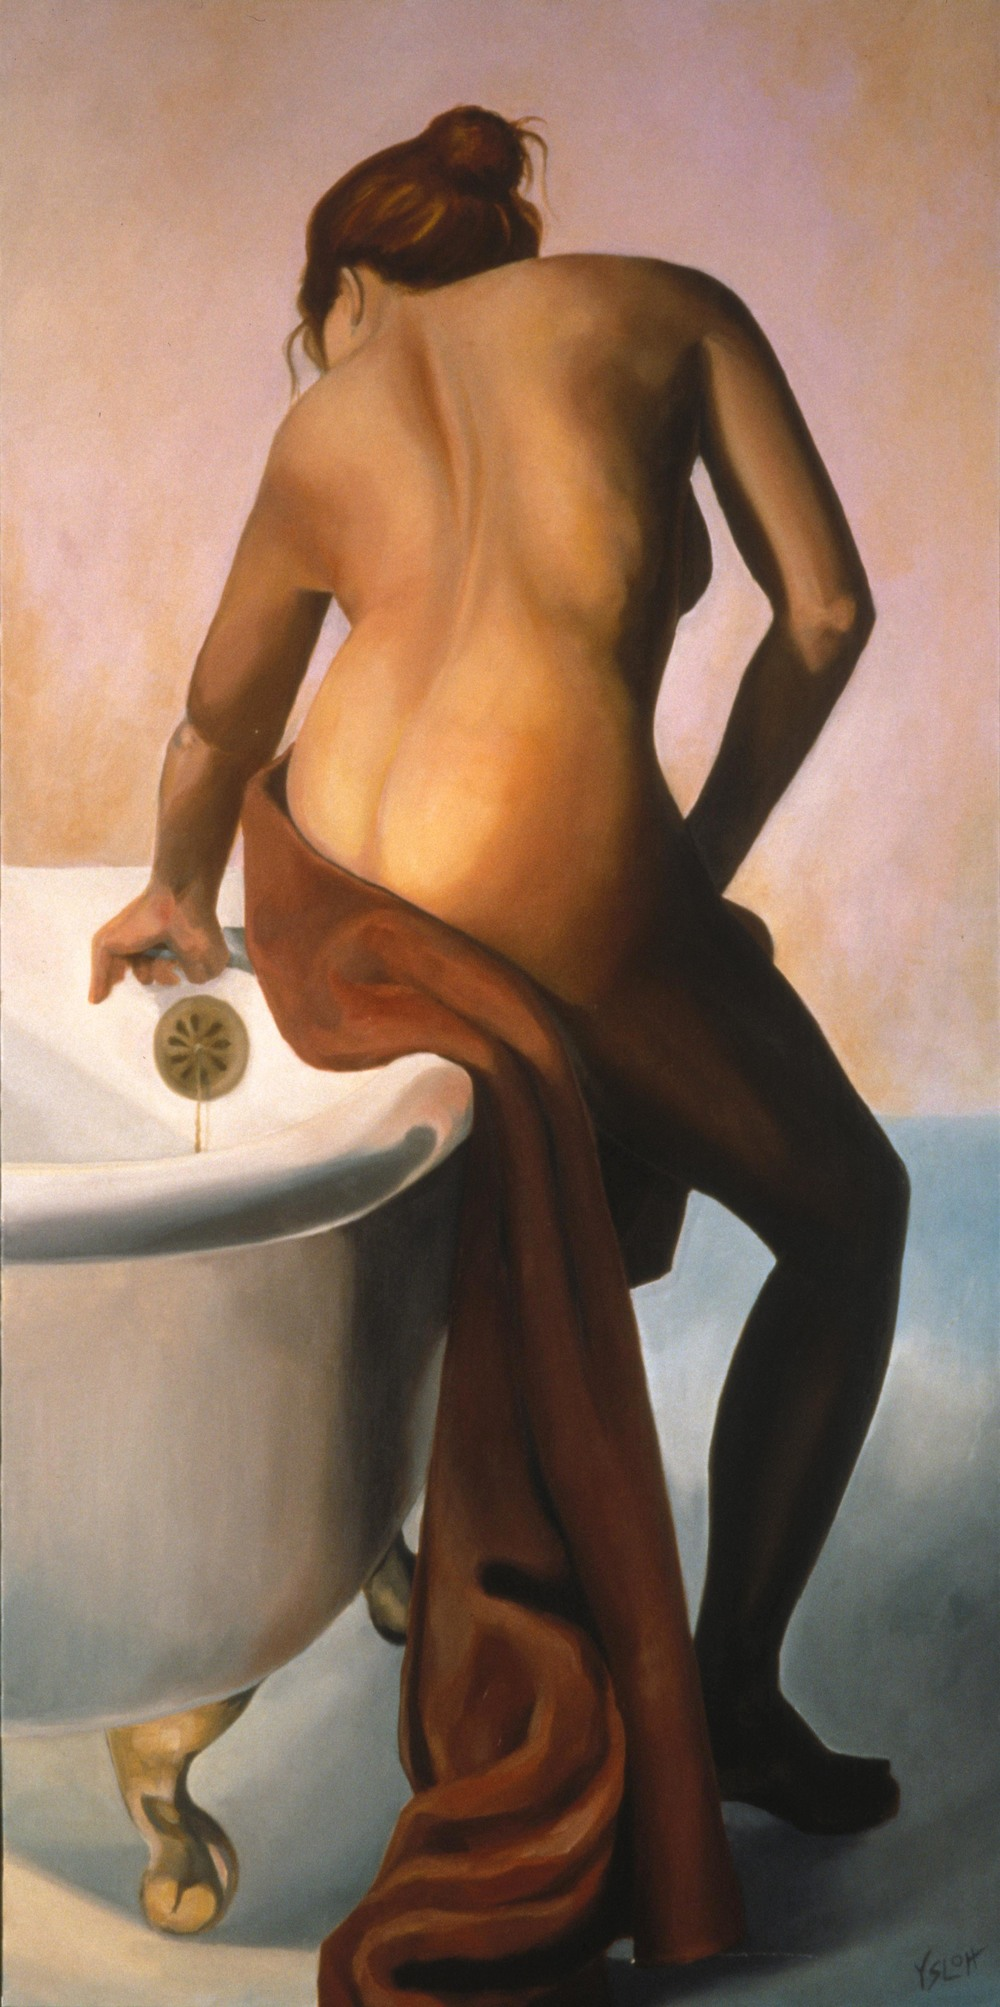 Woman Bathing   oil on canvas, 48 x 24         Sharon Brown, private colllection